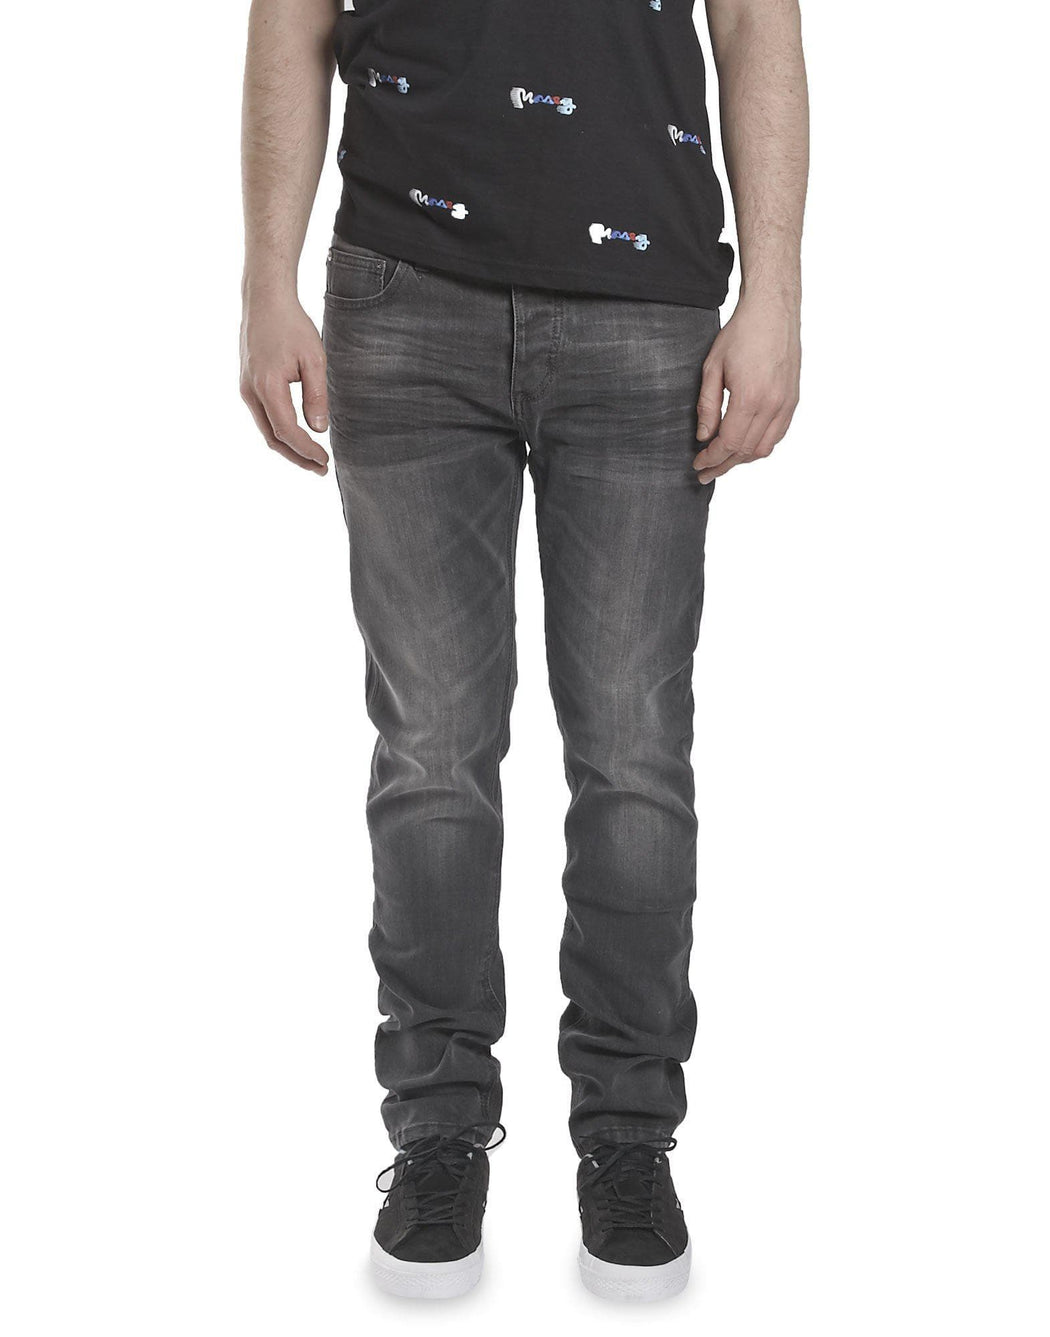 Money Tapered Fit Jeans in Light Grey